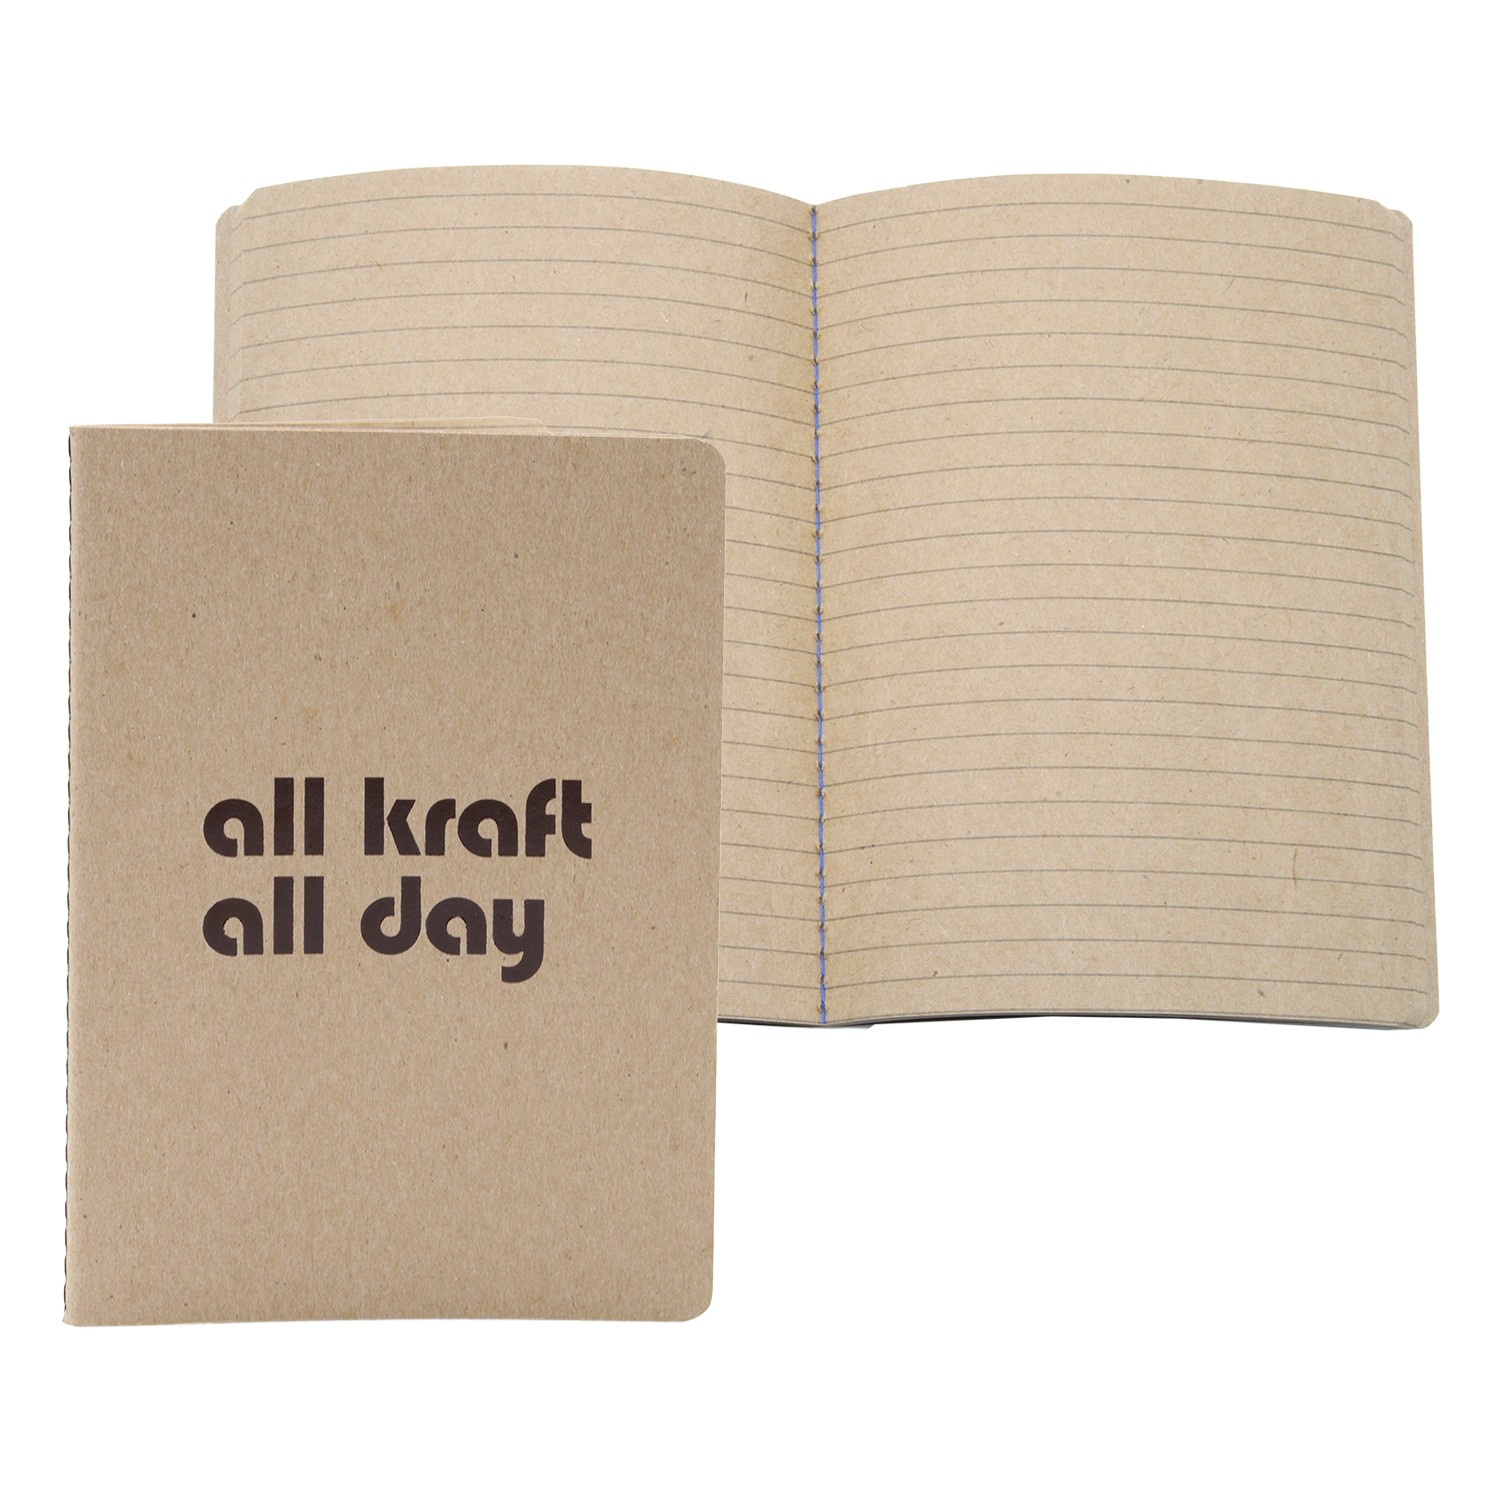 "7"" x 9"" ALL RAFT Commuter Journal 56 Pages"